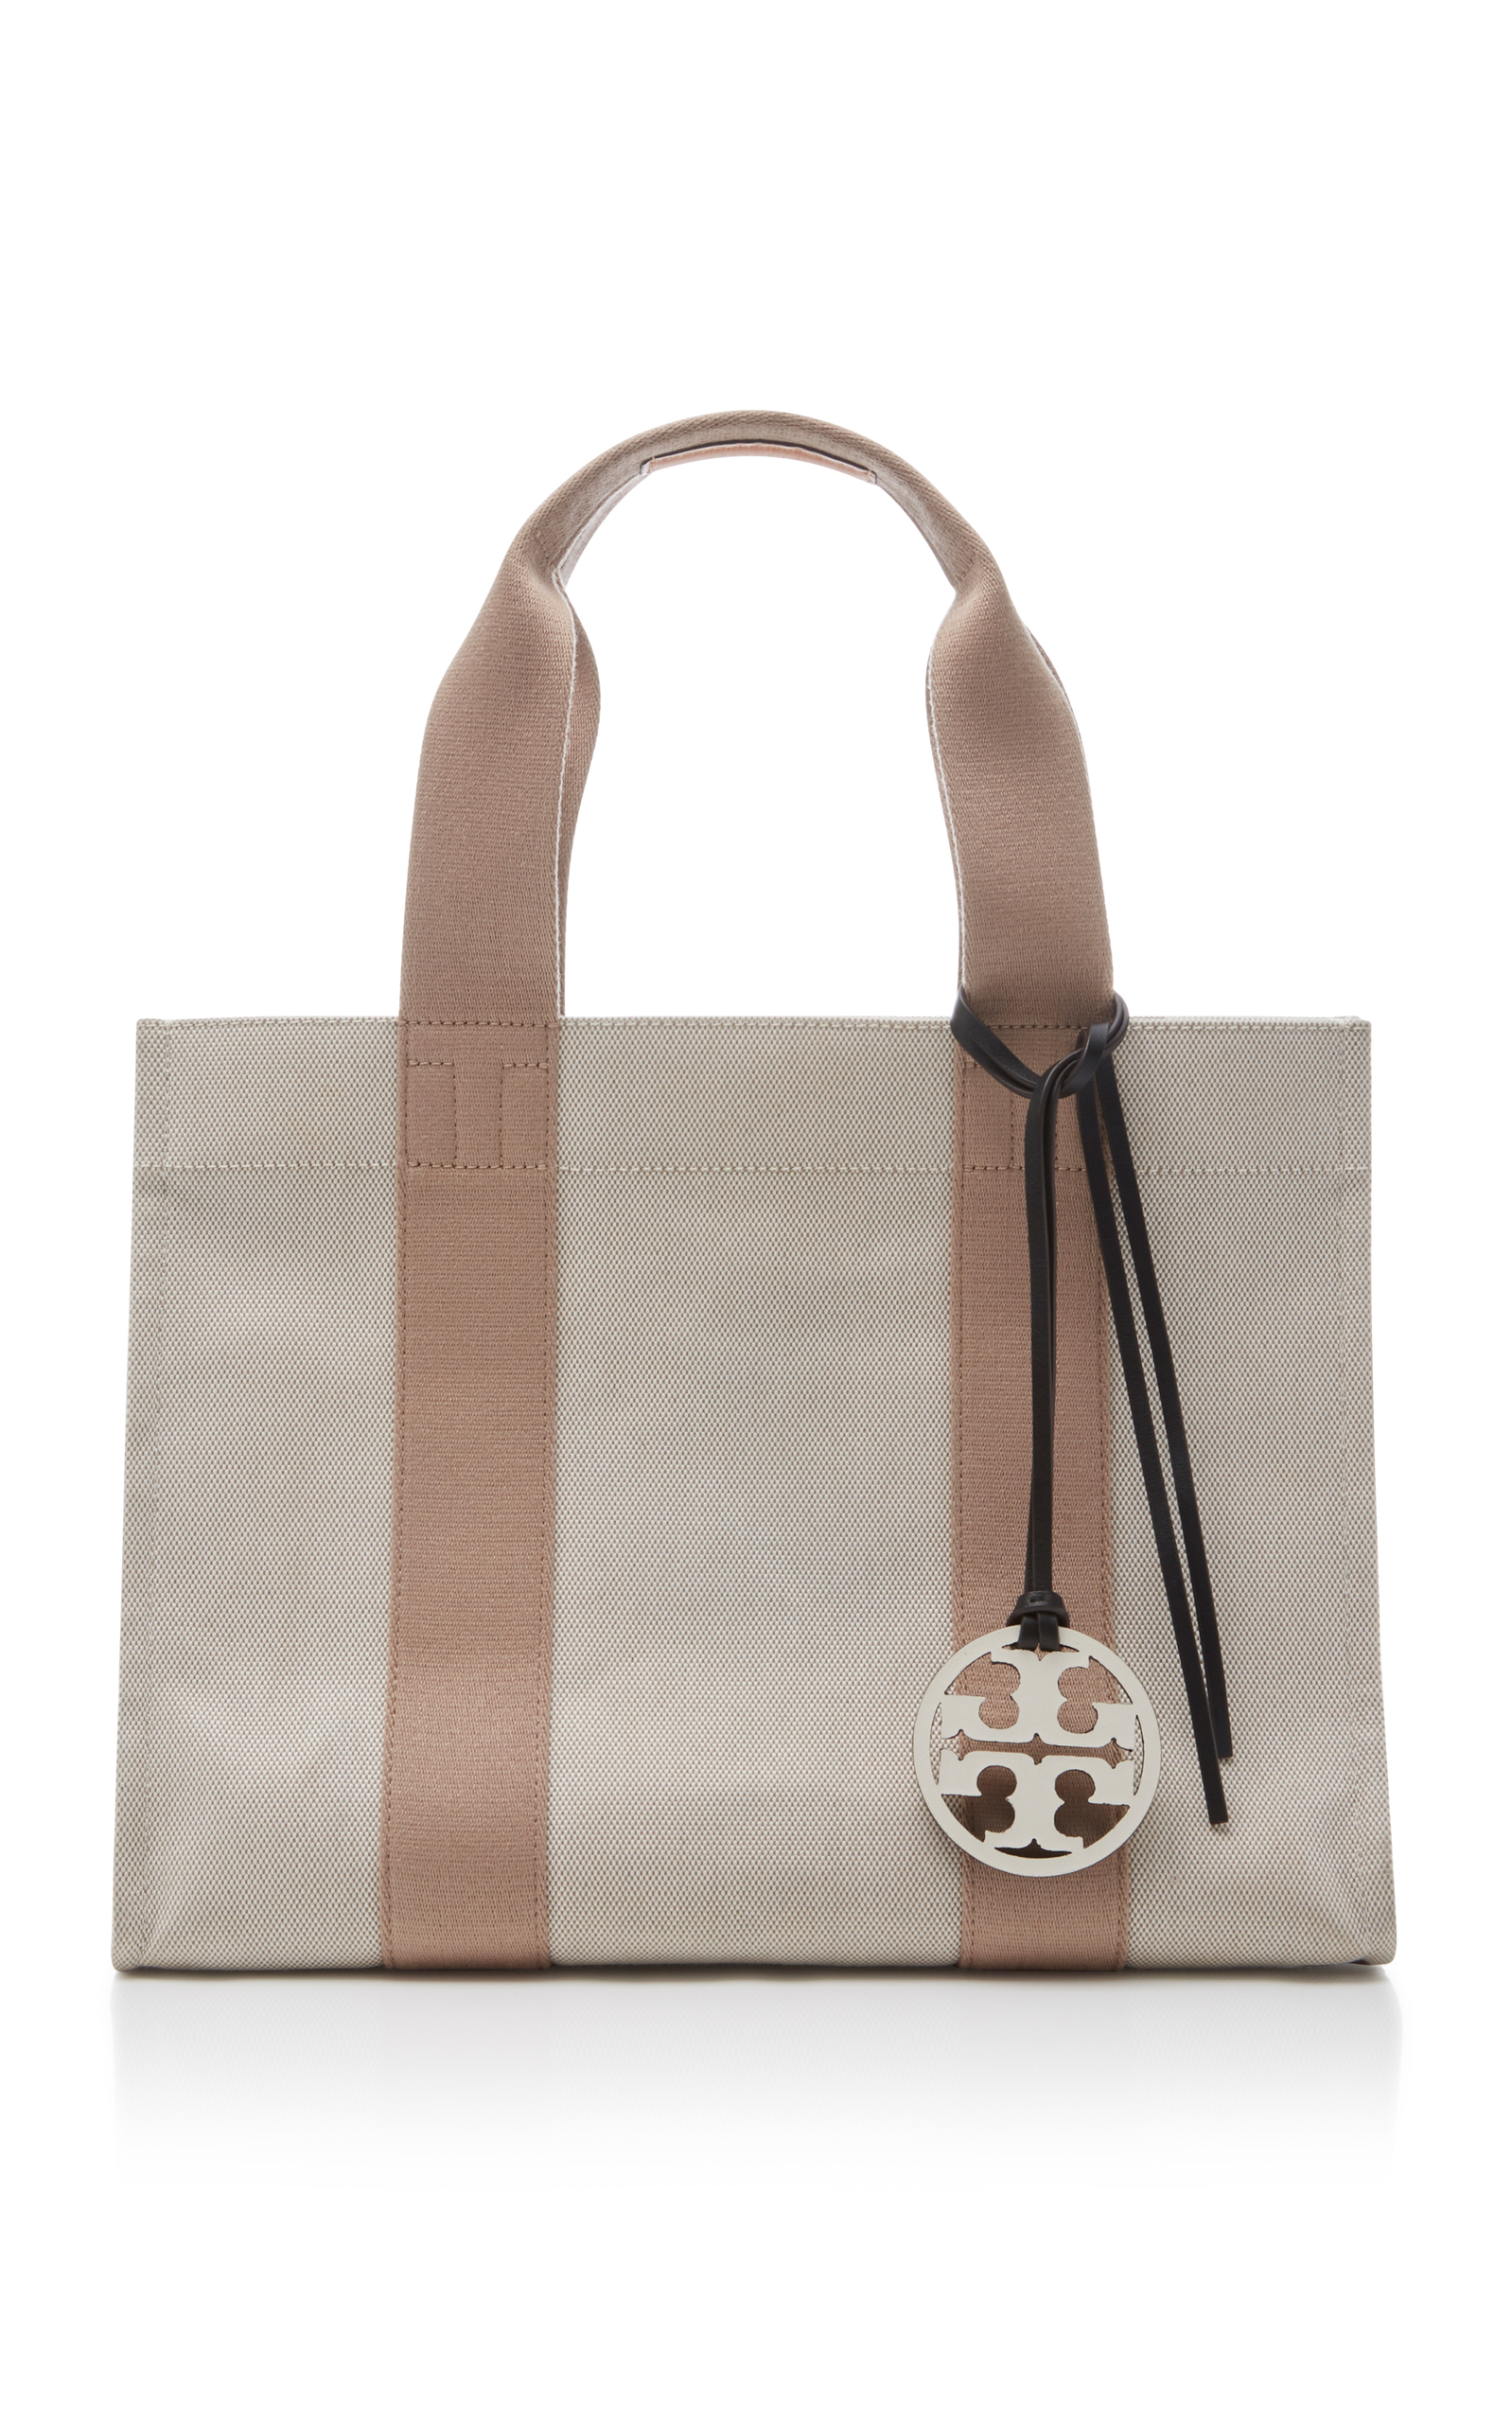 044971ae5 Tory BurchMiller Canvas Tote. CLOSE. Loading